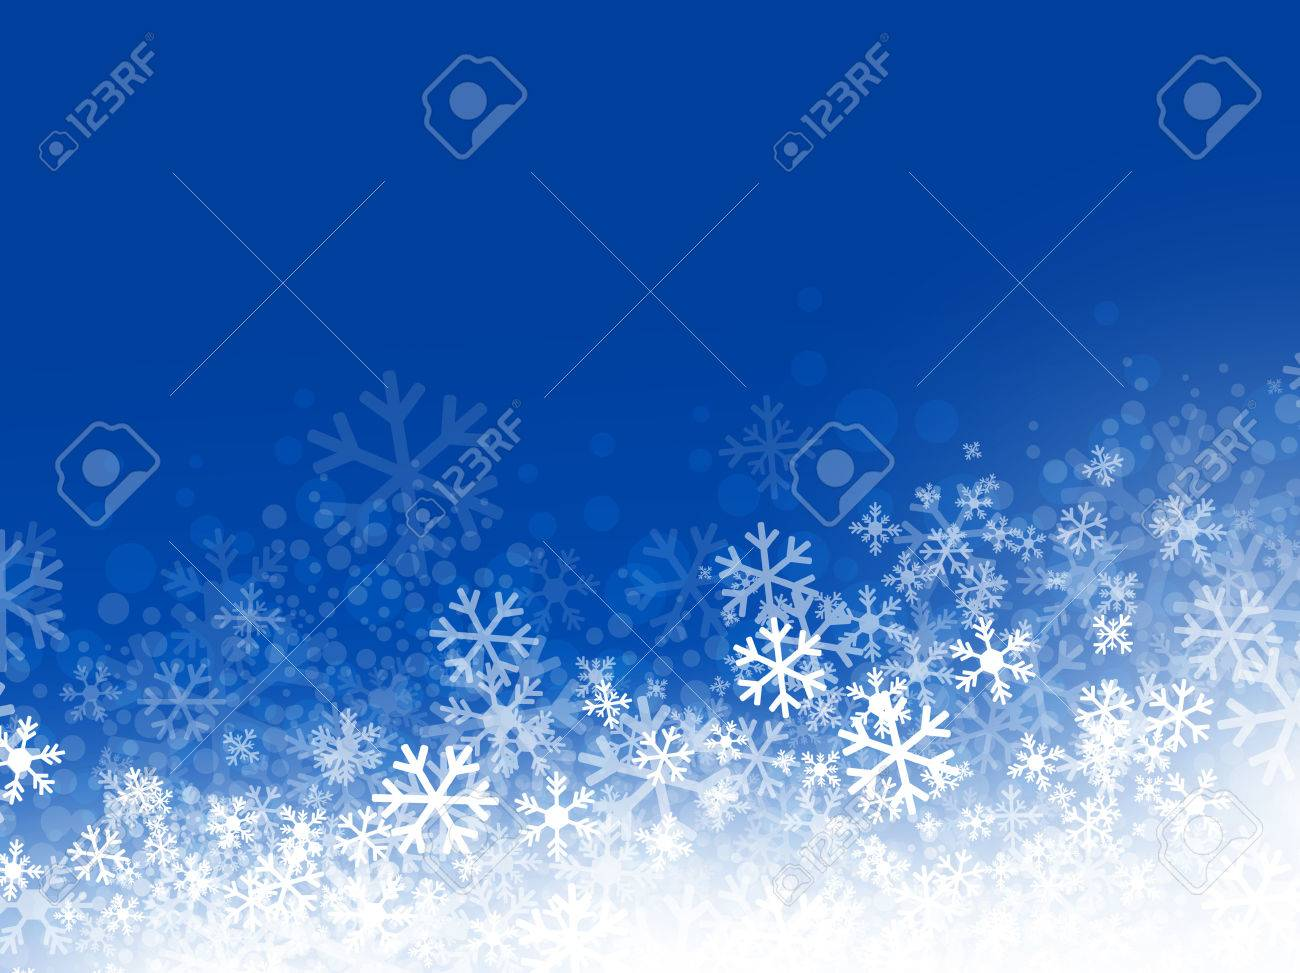 Winter Abstract Snowflake Background in Blue, Copyspace - 23117339